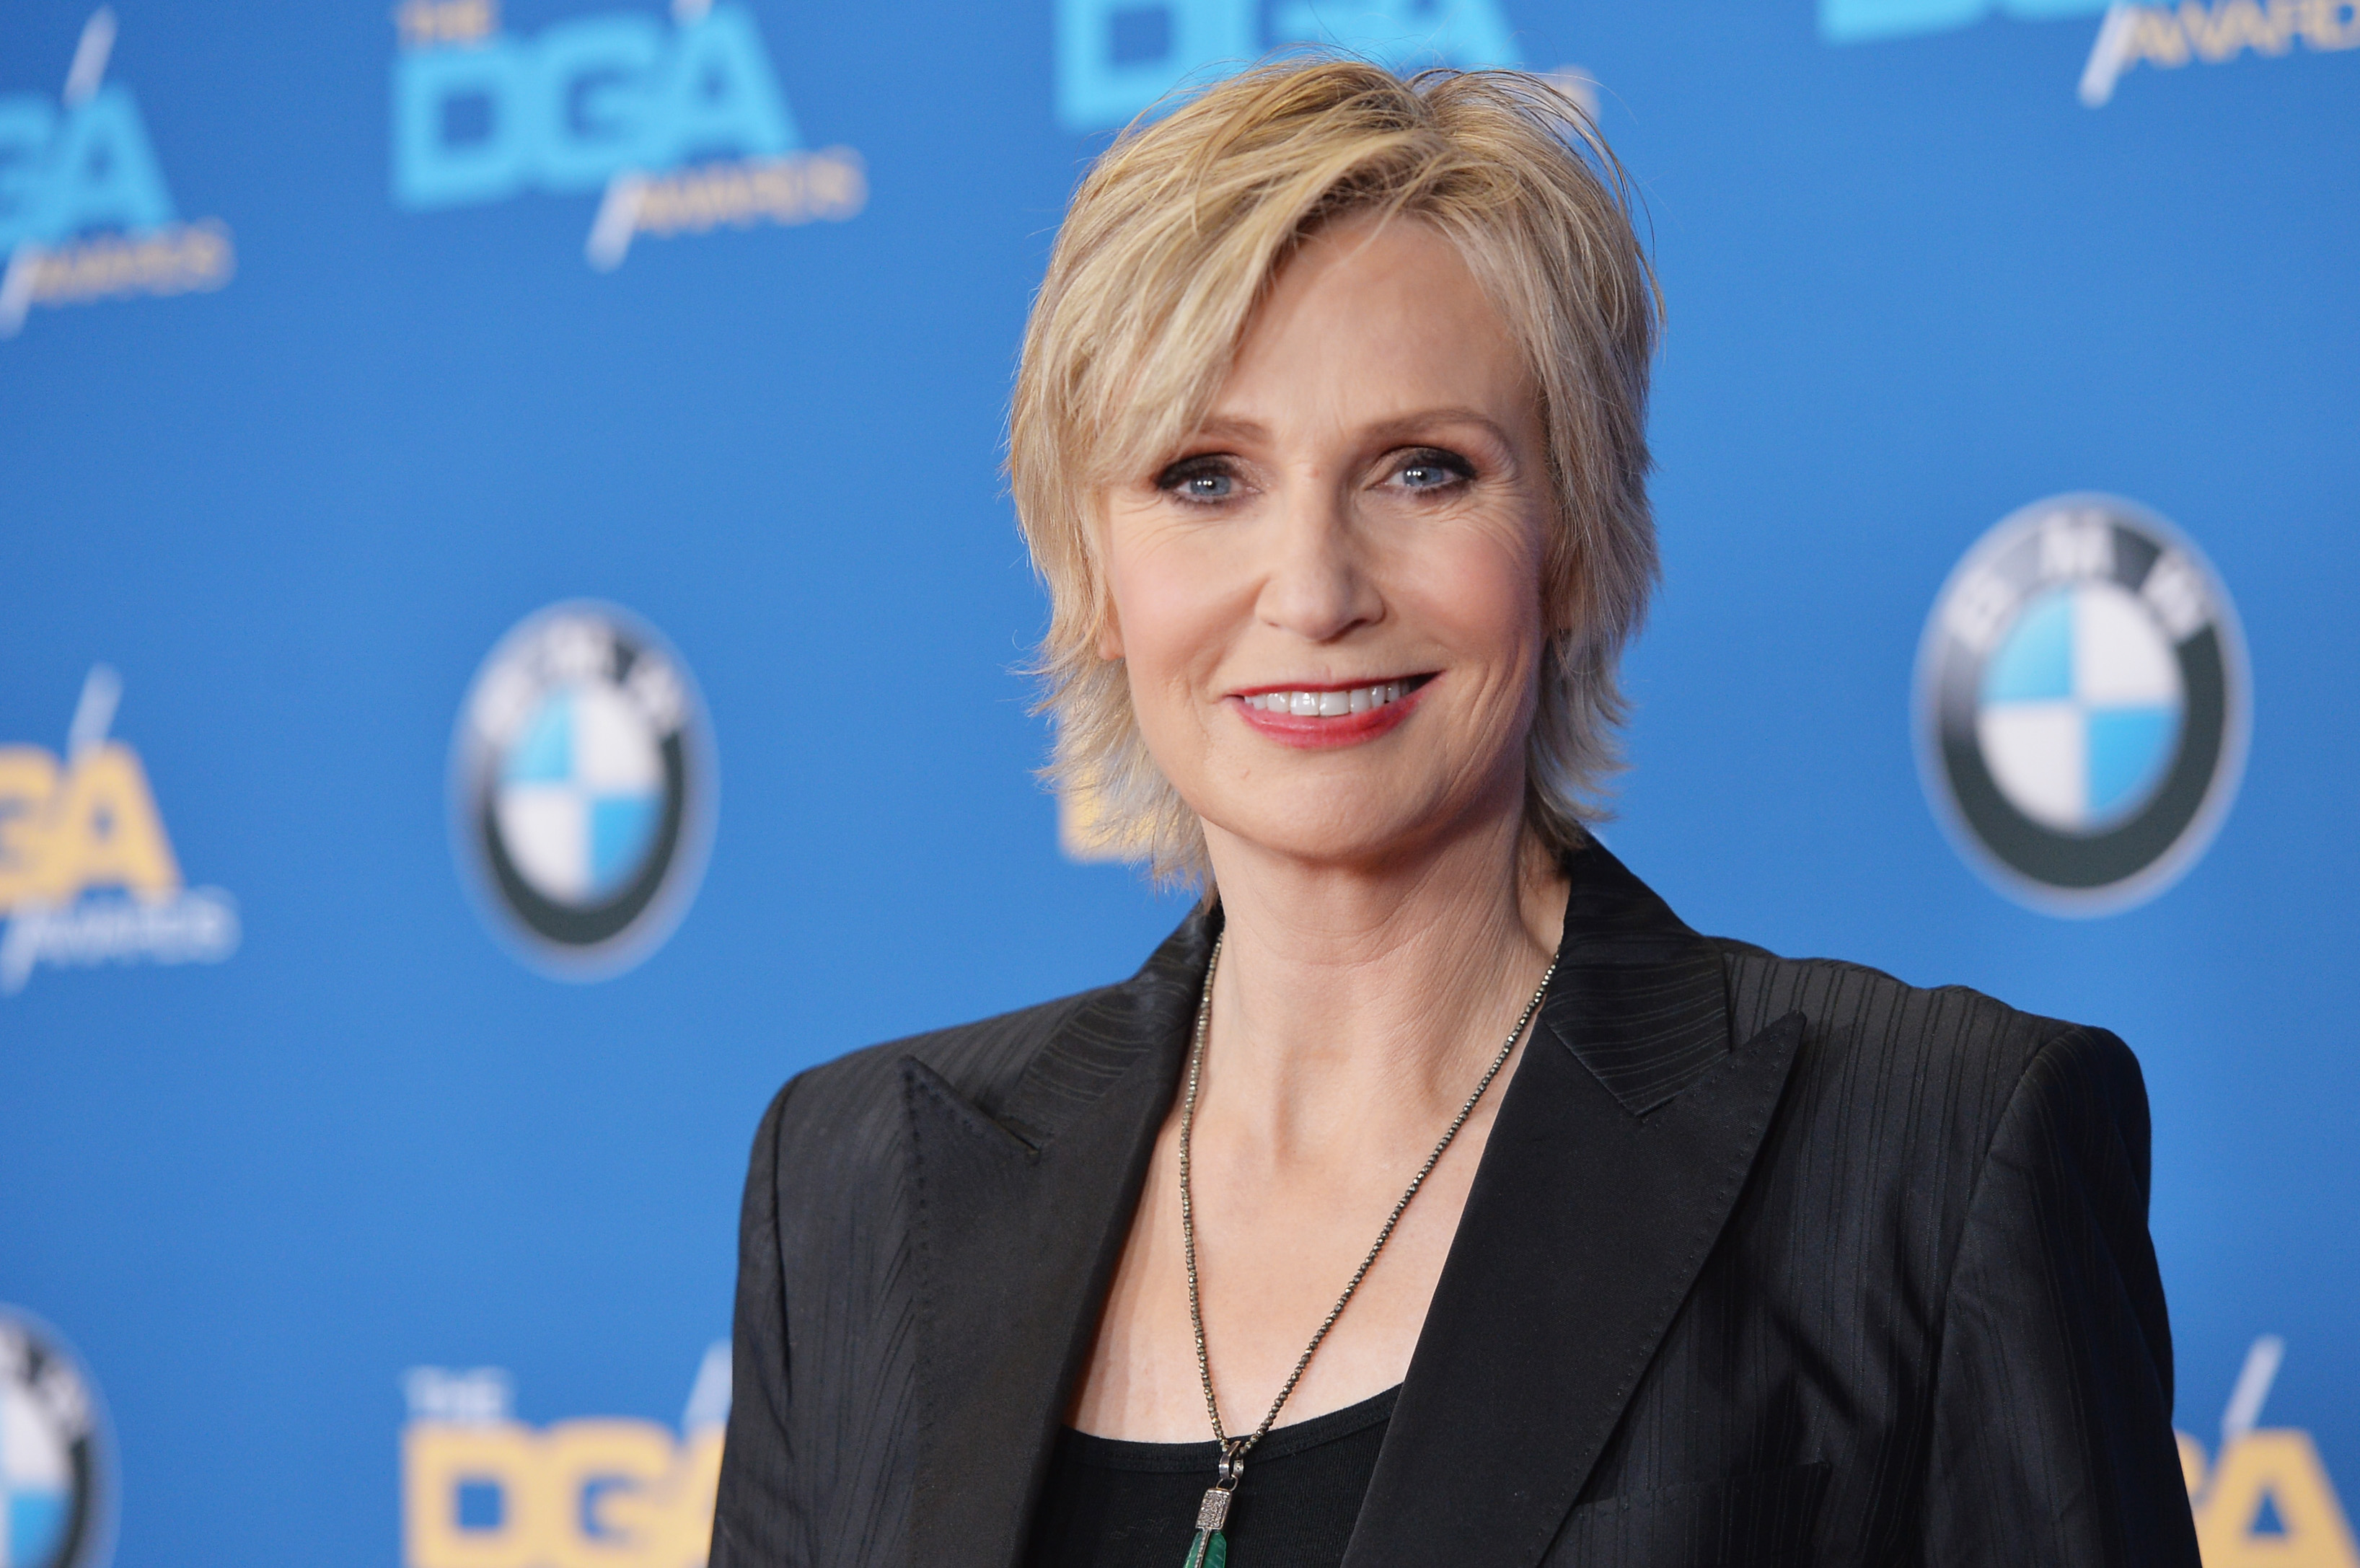 Jane Lynch responded to a Twitter troll in the most Jane Lynch way possible, and we love her for it